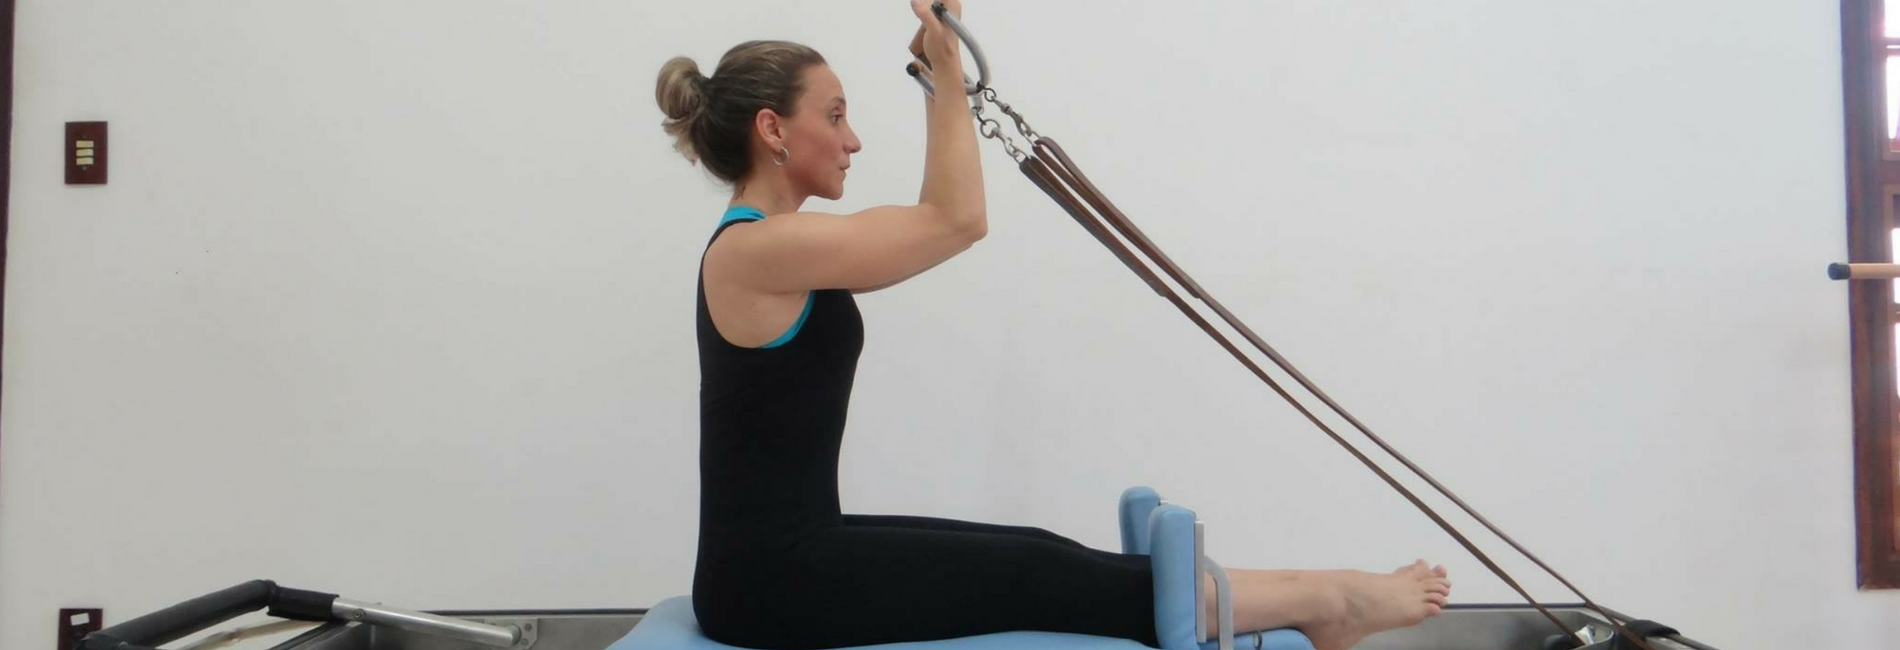 Standard swscd   pilates  1   activity banner image    1900x650